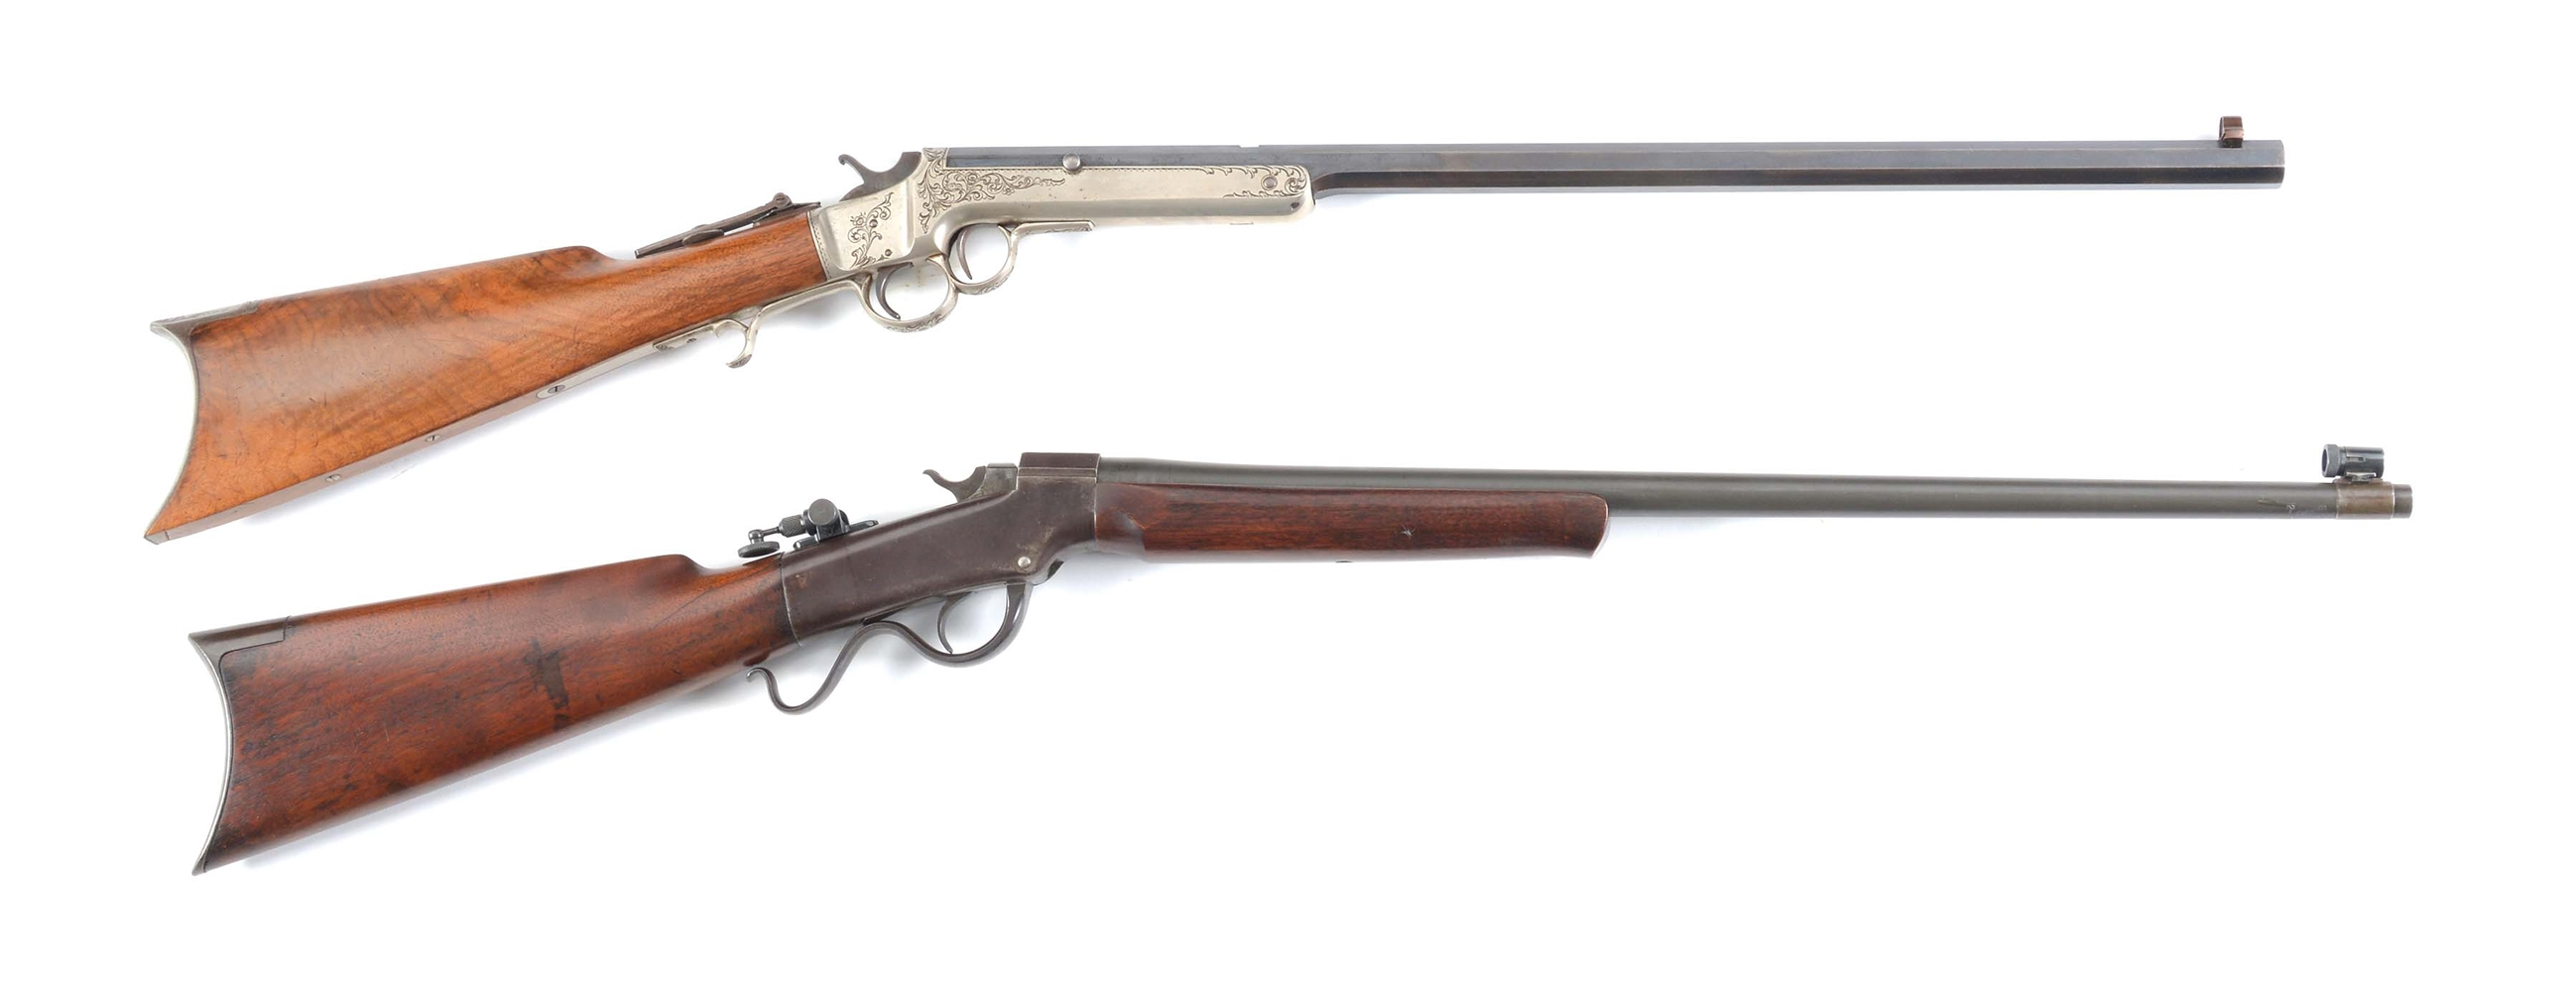 (A) LOT OF TWO: FRANK WESSON .32 AND MARLIN BALLARD .22 SINGLE SHOT RIFLES.